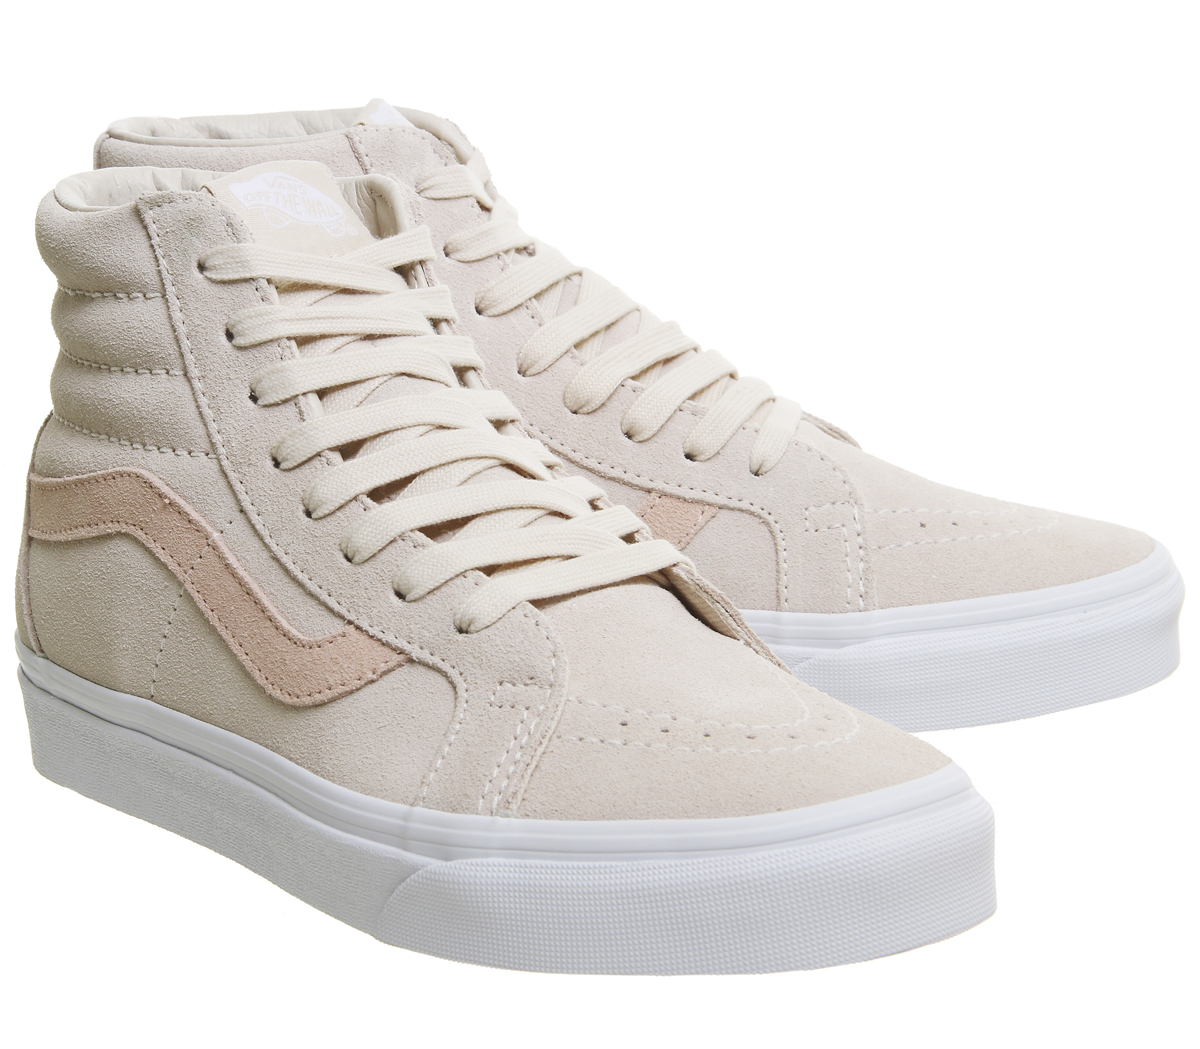 80a8f5602433 Womens Vans Sk8 Hi Trainers LIGHT PINK DARK PINK Trainers Shoes